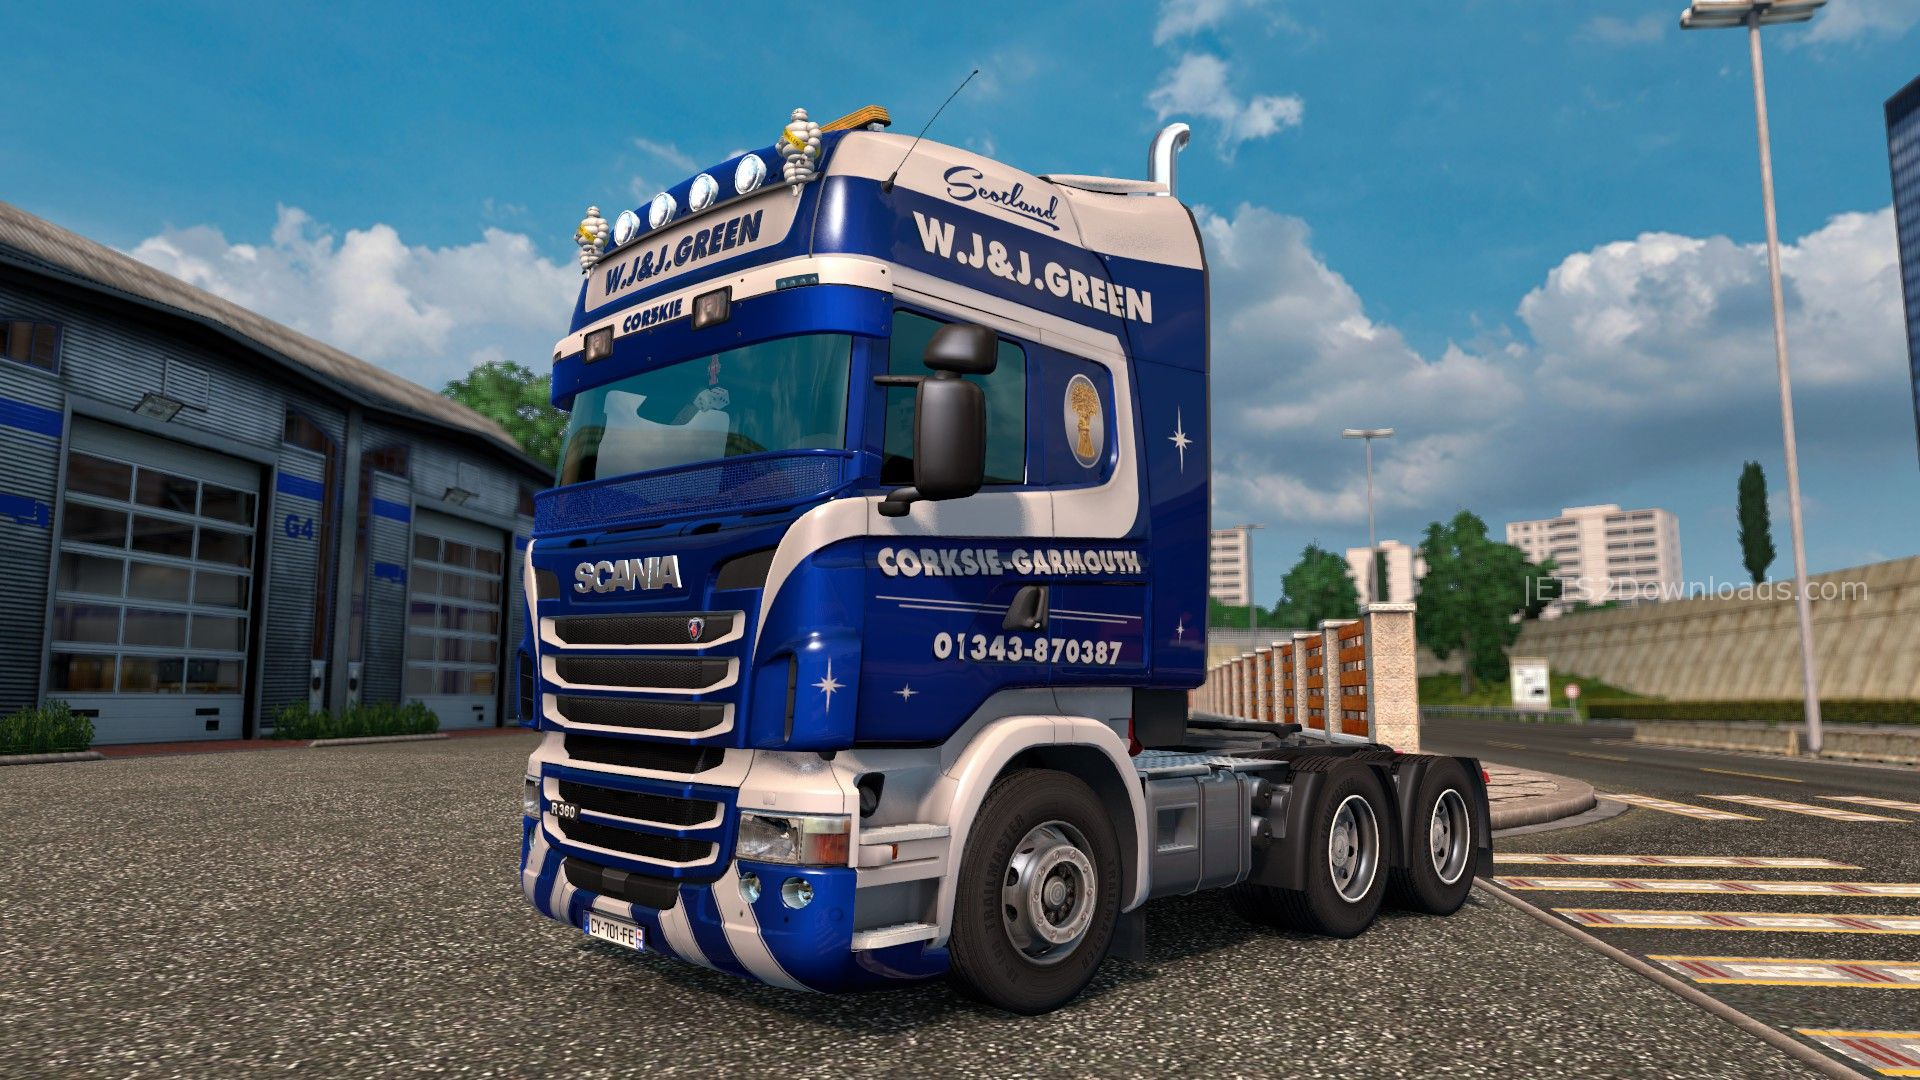 w-j-j-green-metallic-skin-for-scania-rjl-2